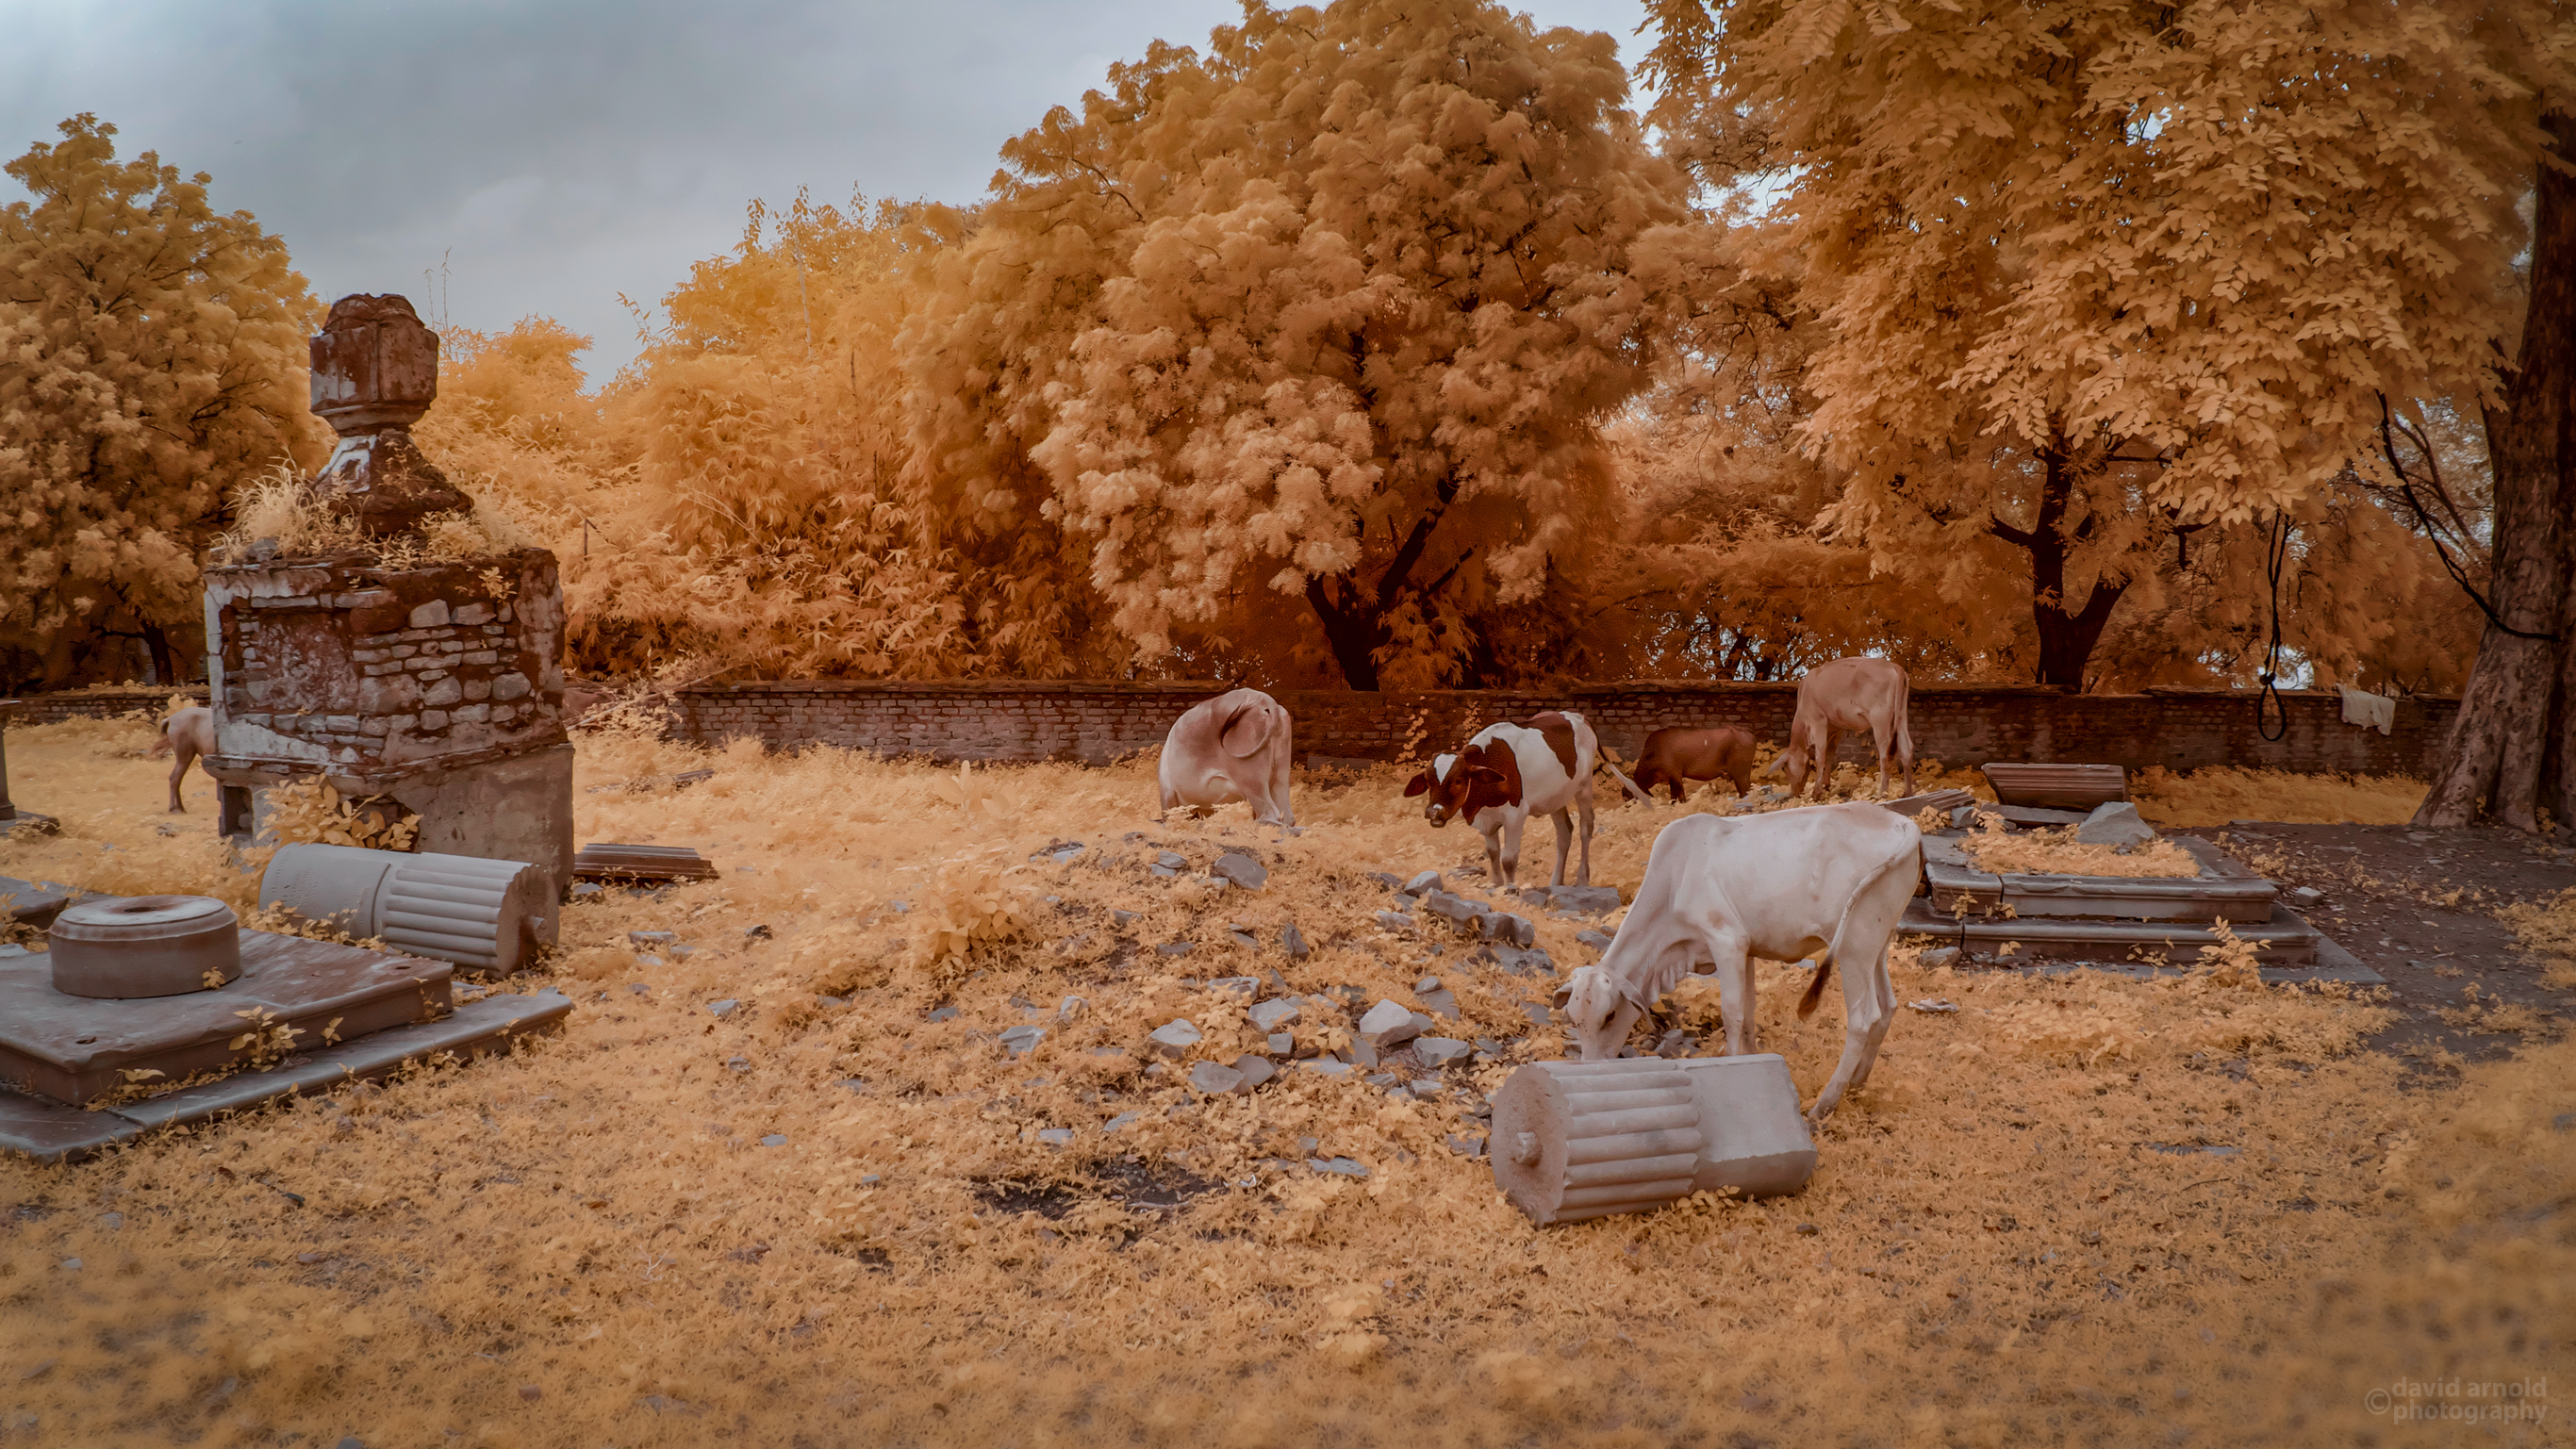 Tombs, Cows Grazing, British Cemetery, Chunar, India